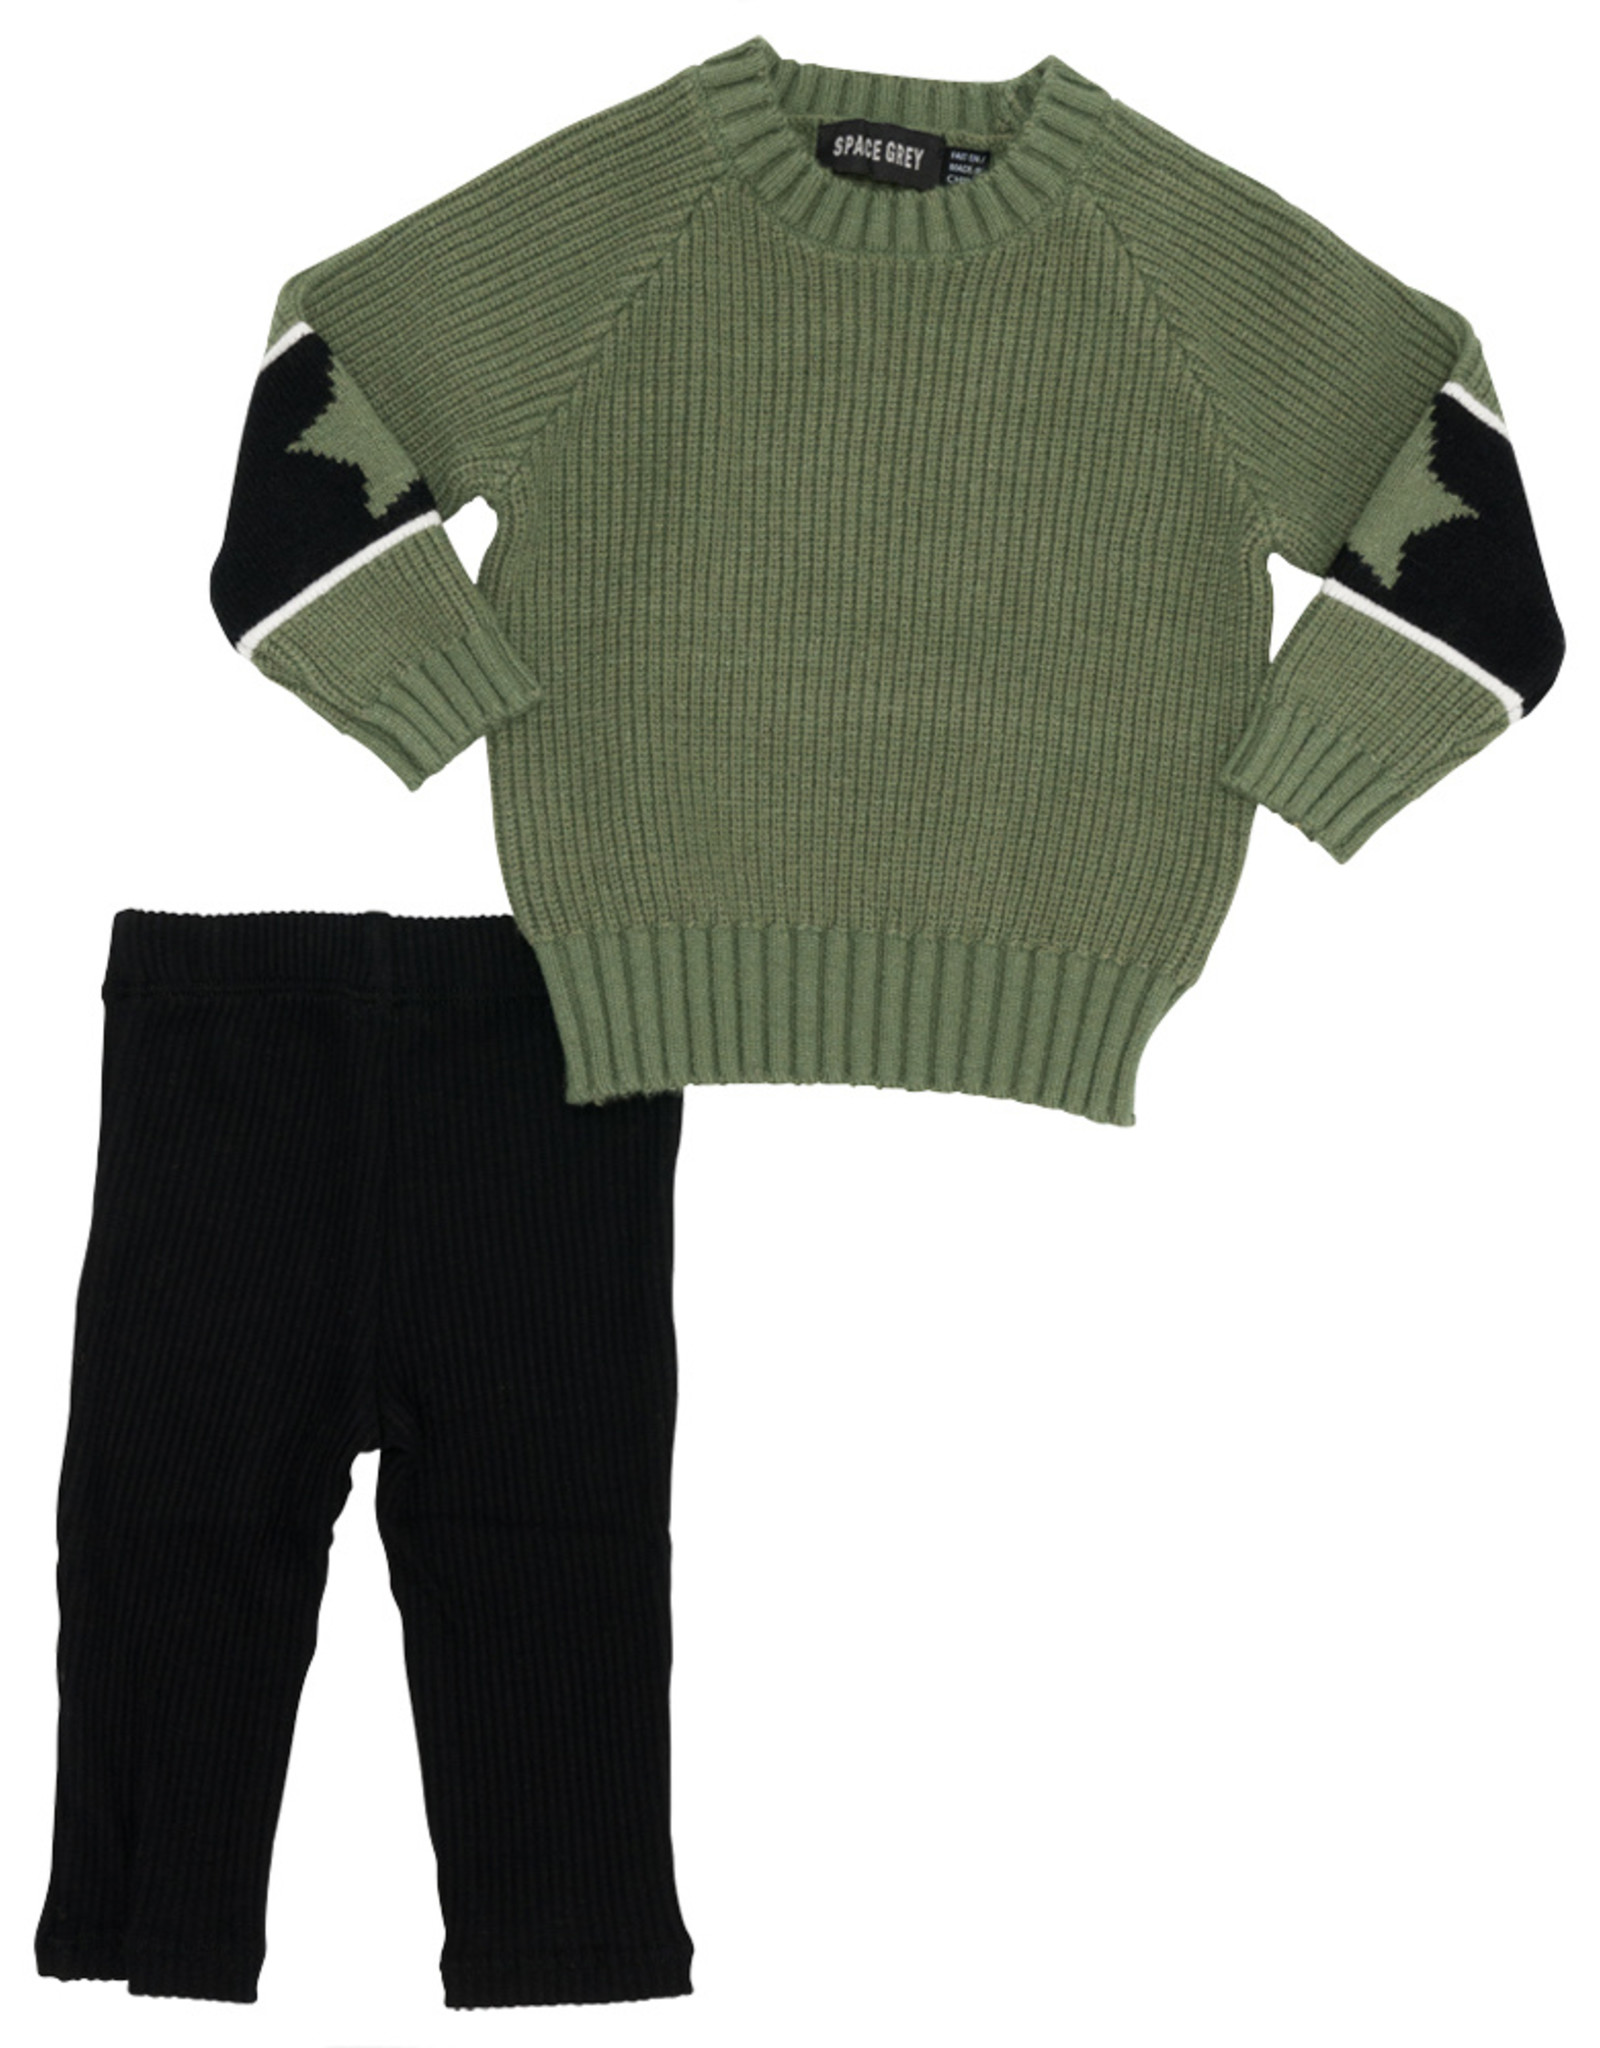 Space Grey Space Grey Sweater Set with Star on Sleeve